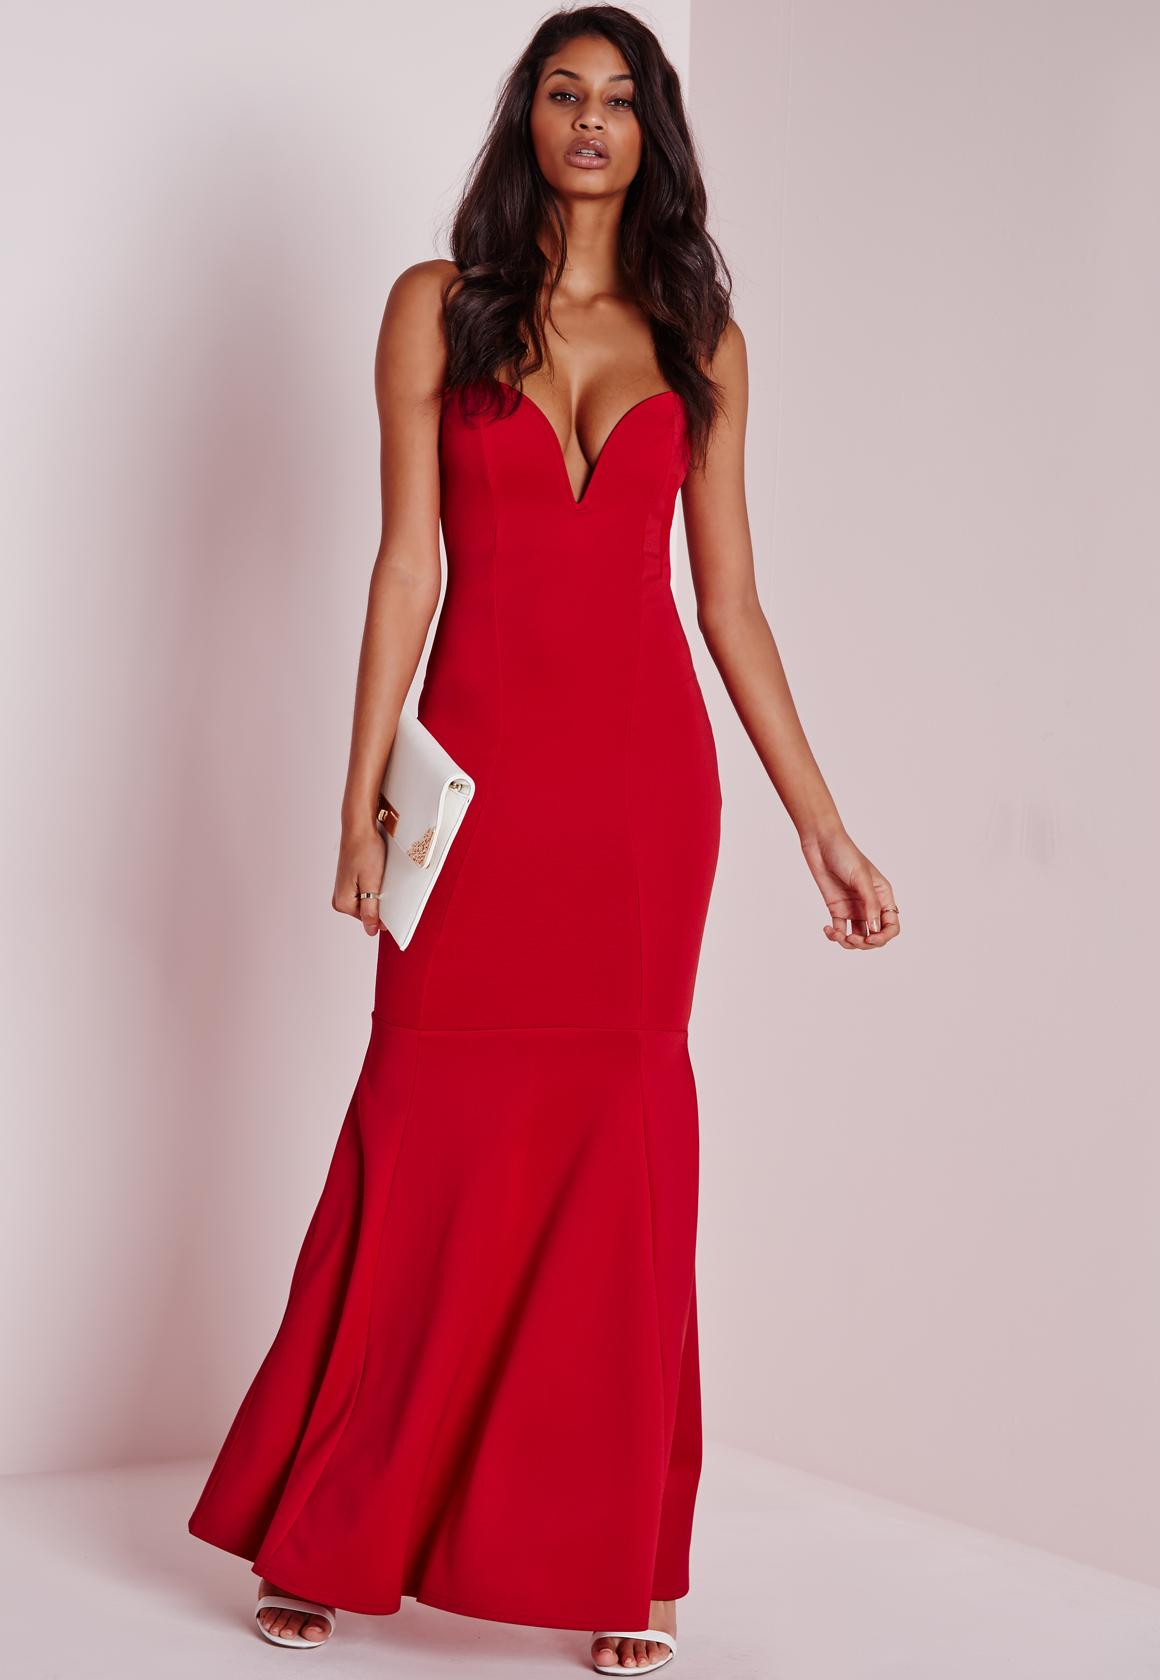 Sweetheart Neck Maxi Dress Red - Missguided